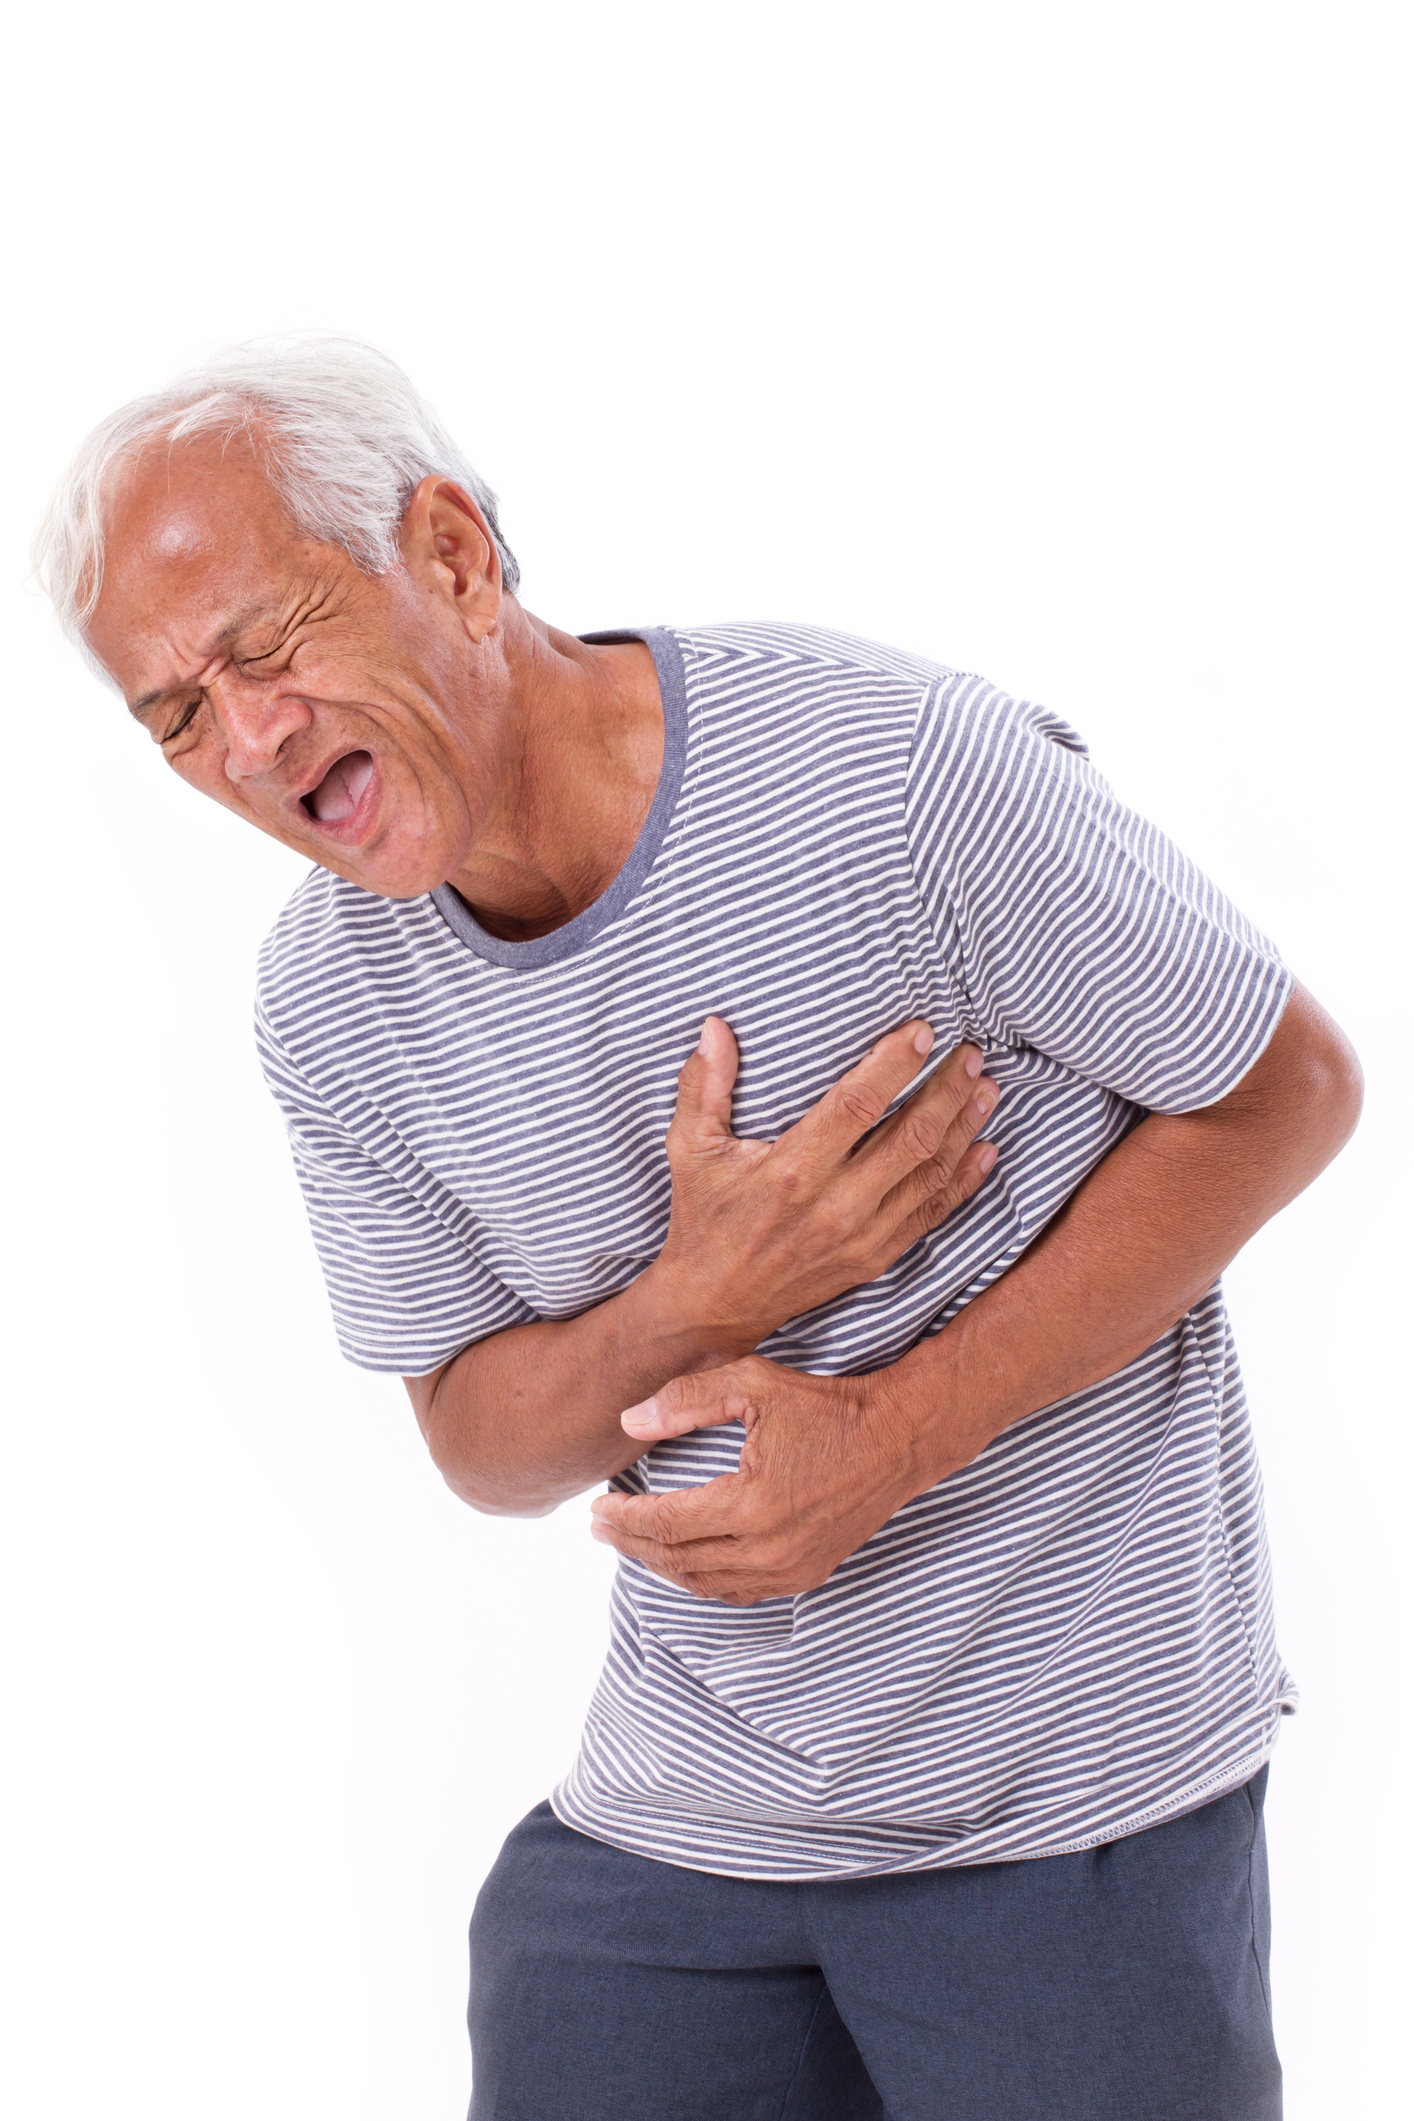 How You Can Avoid Frequent Heartburn